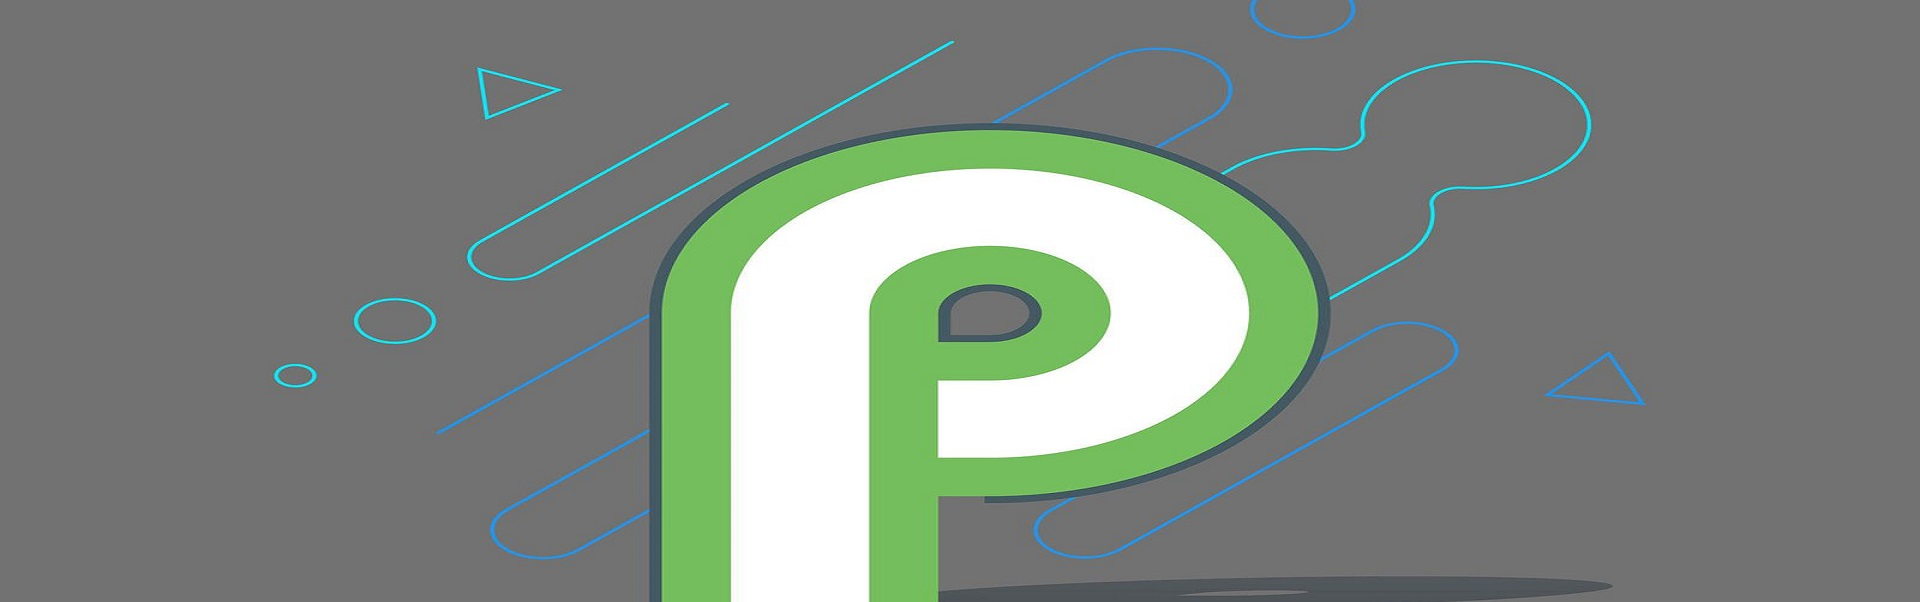 WHY YOU SHOULD UPGRADE TO THE LATEST ANDROID VERSION